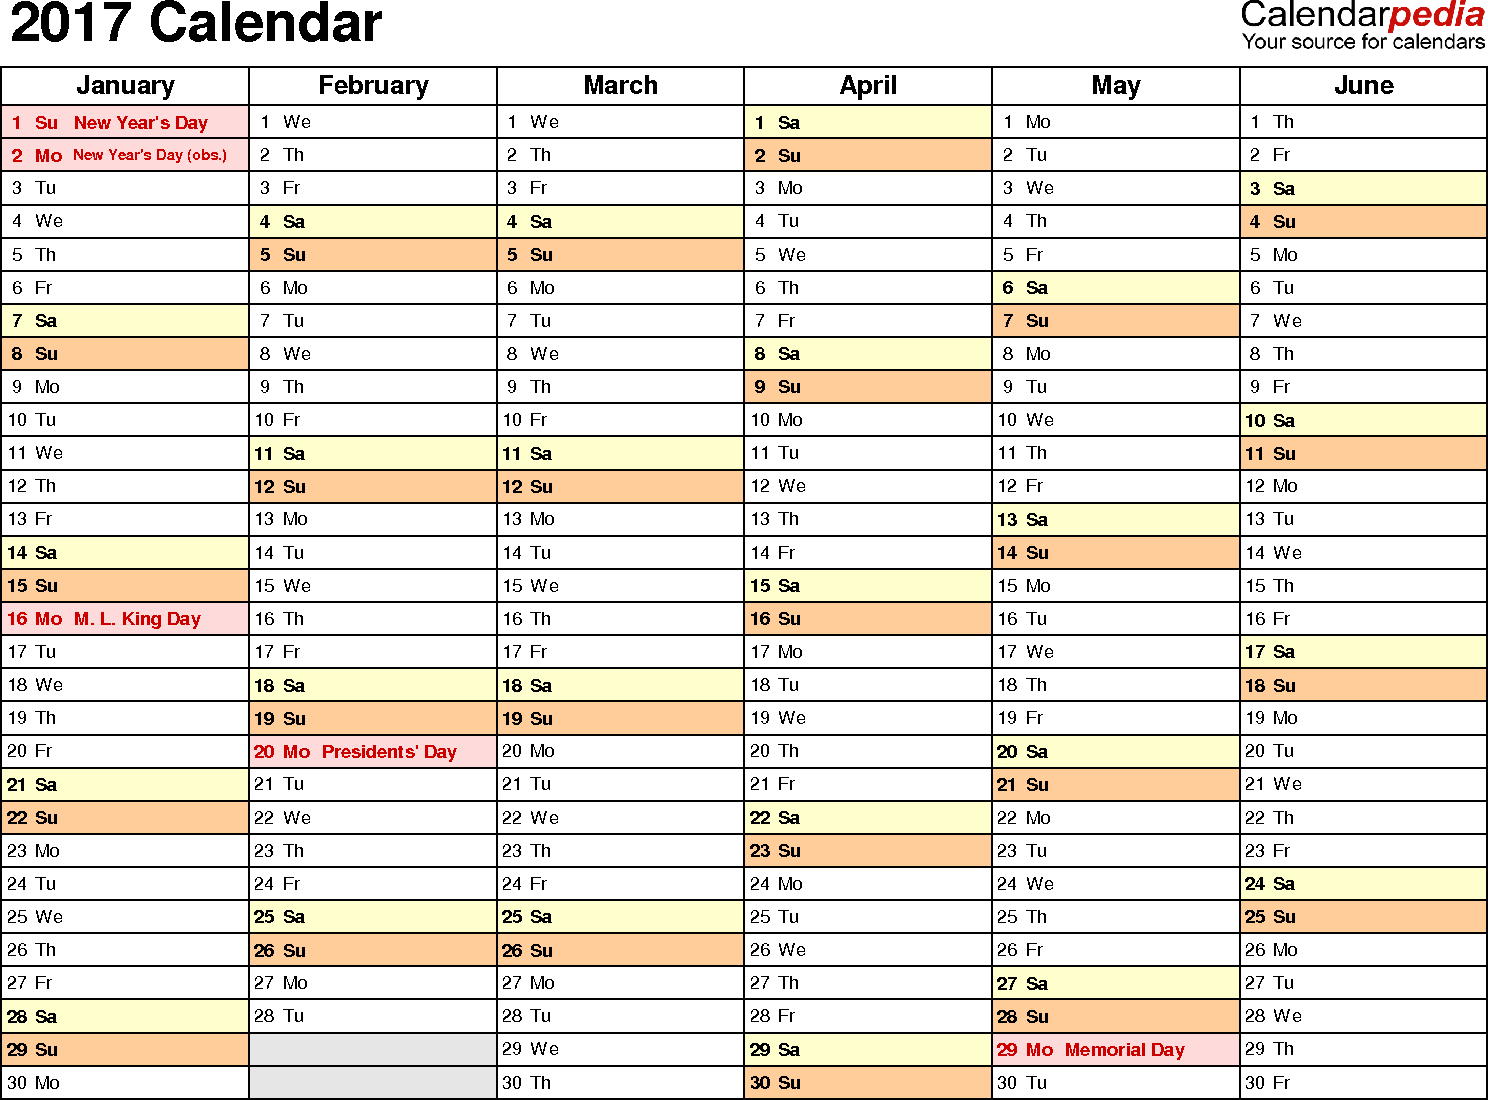 Ediblewildsus  Prepossessing  Calendar  Download  Free Printable Excel Templates Xls With Marvelous Template   Calendar For Excel Months Horizontally  Pages Landscape Orientation With Lovely Excel Template Extension Also Excel Date Calculator In Addition How To Create An Excel Graph And Excel Divide Cells As Well As Creating A Graph On Excel Additionally Polynomial Trendline Excel From Calendarpediacom With Ediblewildsus  Marvelous  Calendar  Download  Free Printable Excel Templates Xls With Lovely Template   Calendar For Excel Months Horizontally  Pages Landscape Orientation And Prepossessing Excel Template Extension Also Excel Date Calculator In Addition How To Create An Excel Graph From Calendarpediacom